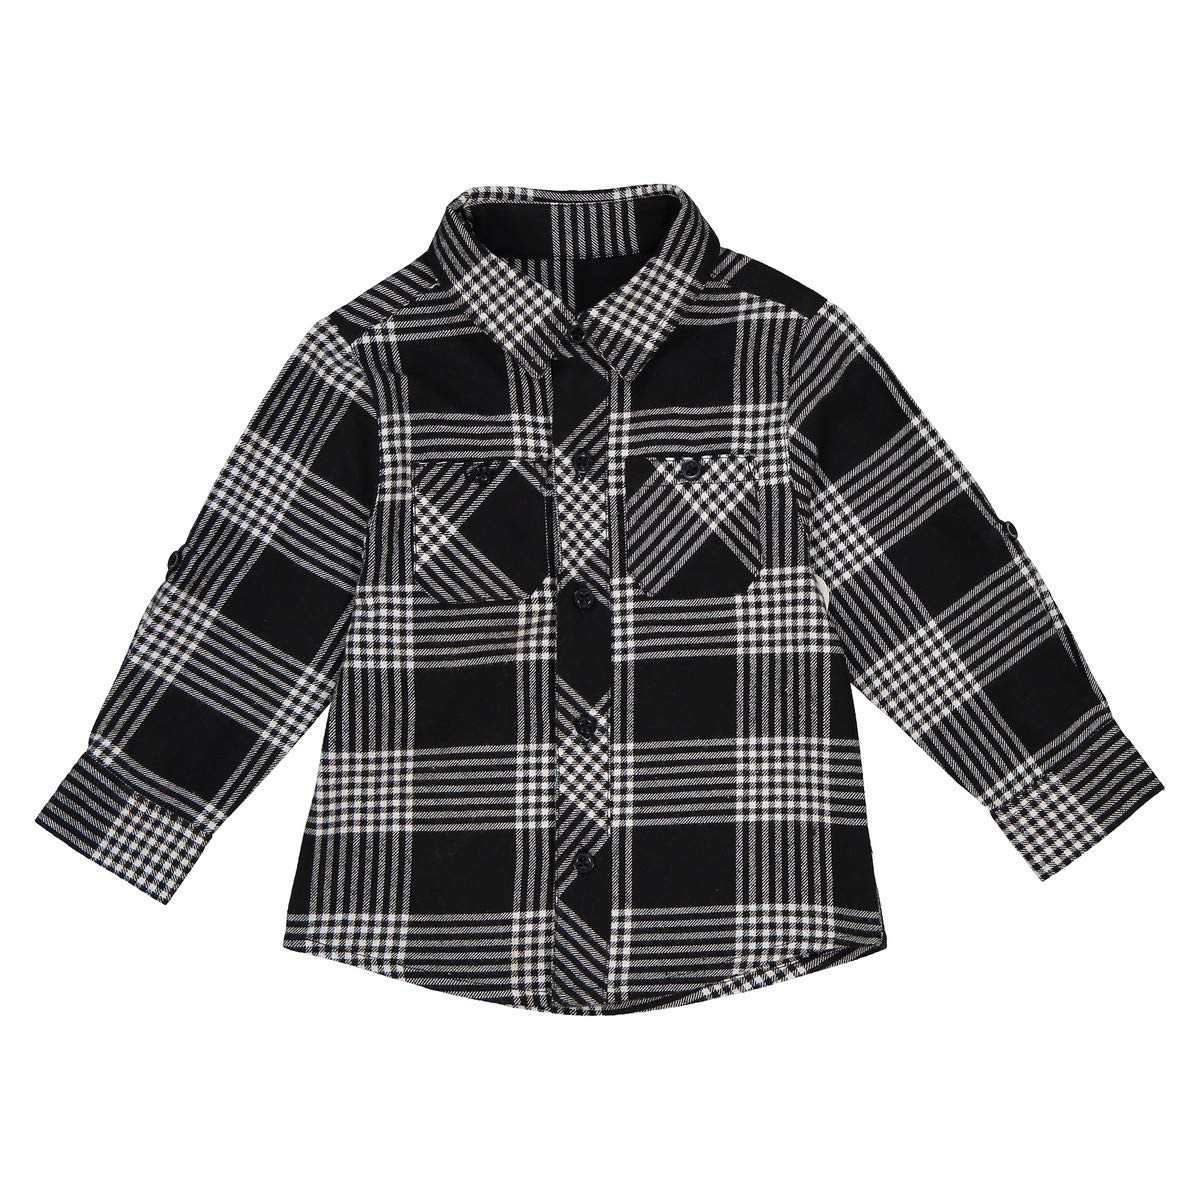 La Redoute Collections Big Boys Long-Sleeved Checked Shirt 1 Month-3 Years